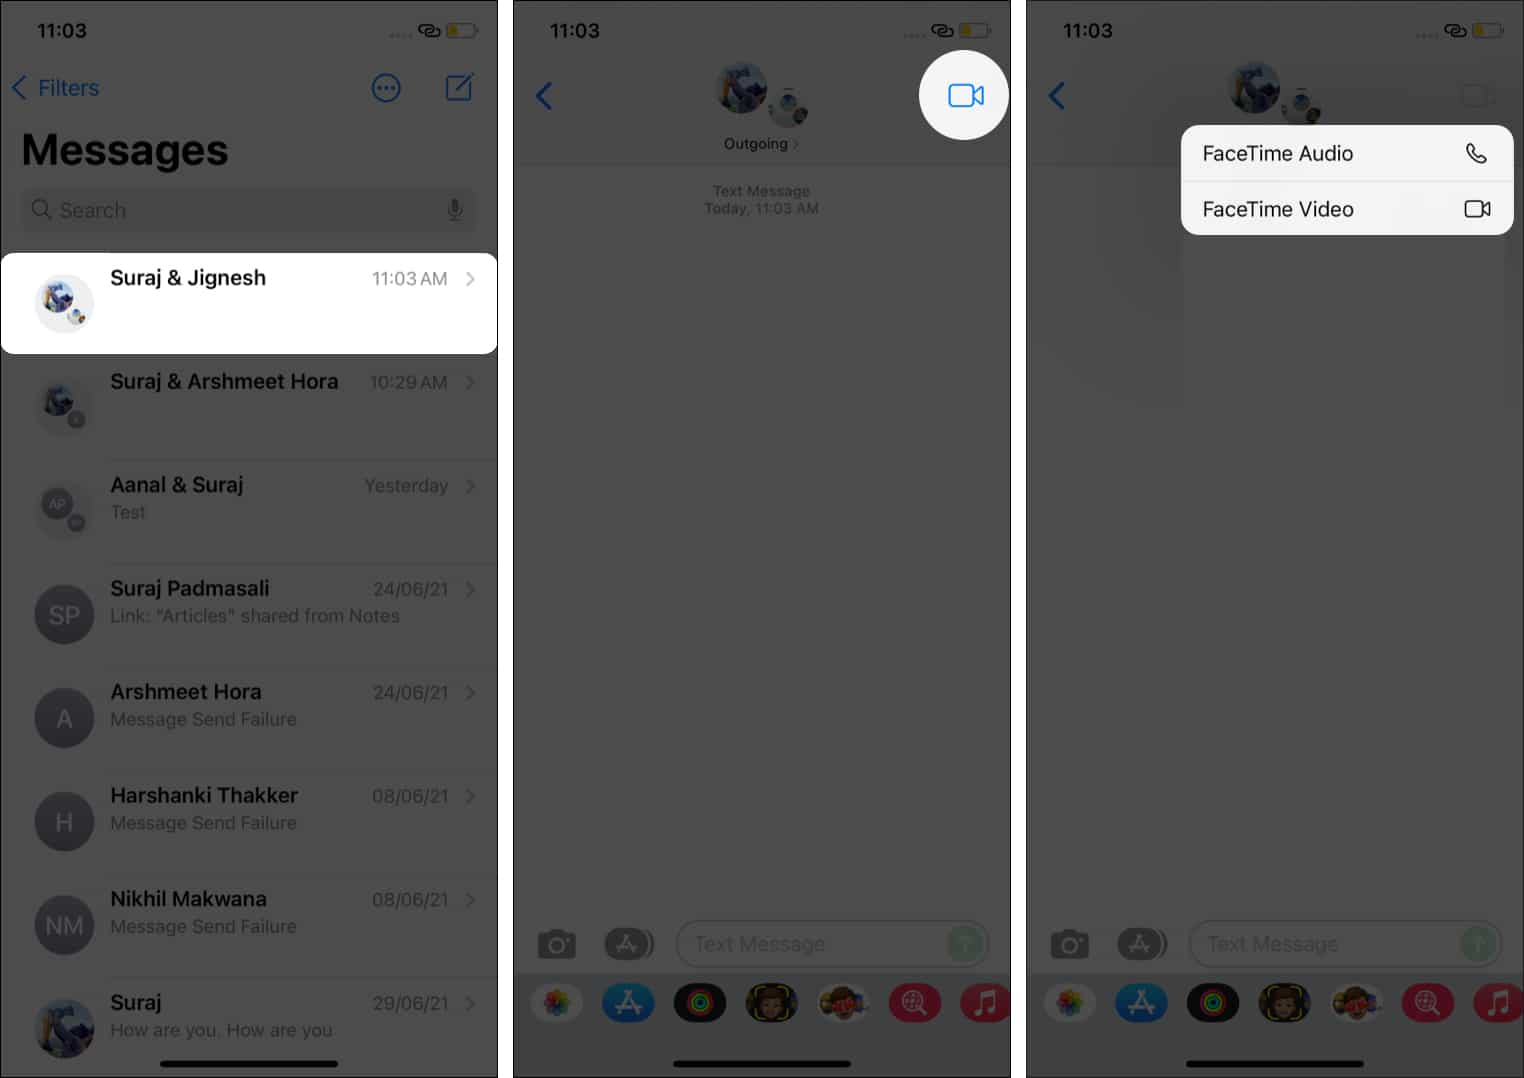 How to start a Group FaceTime call from iMessage groups